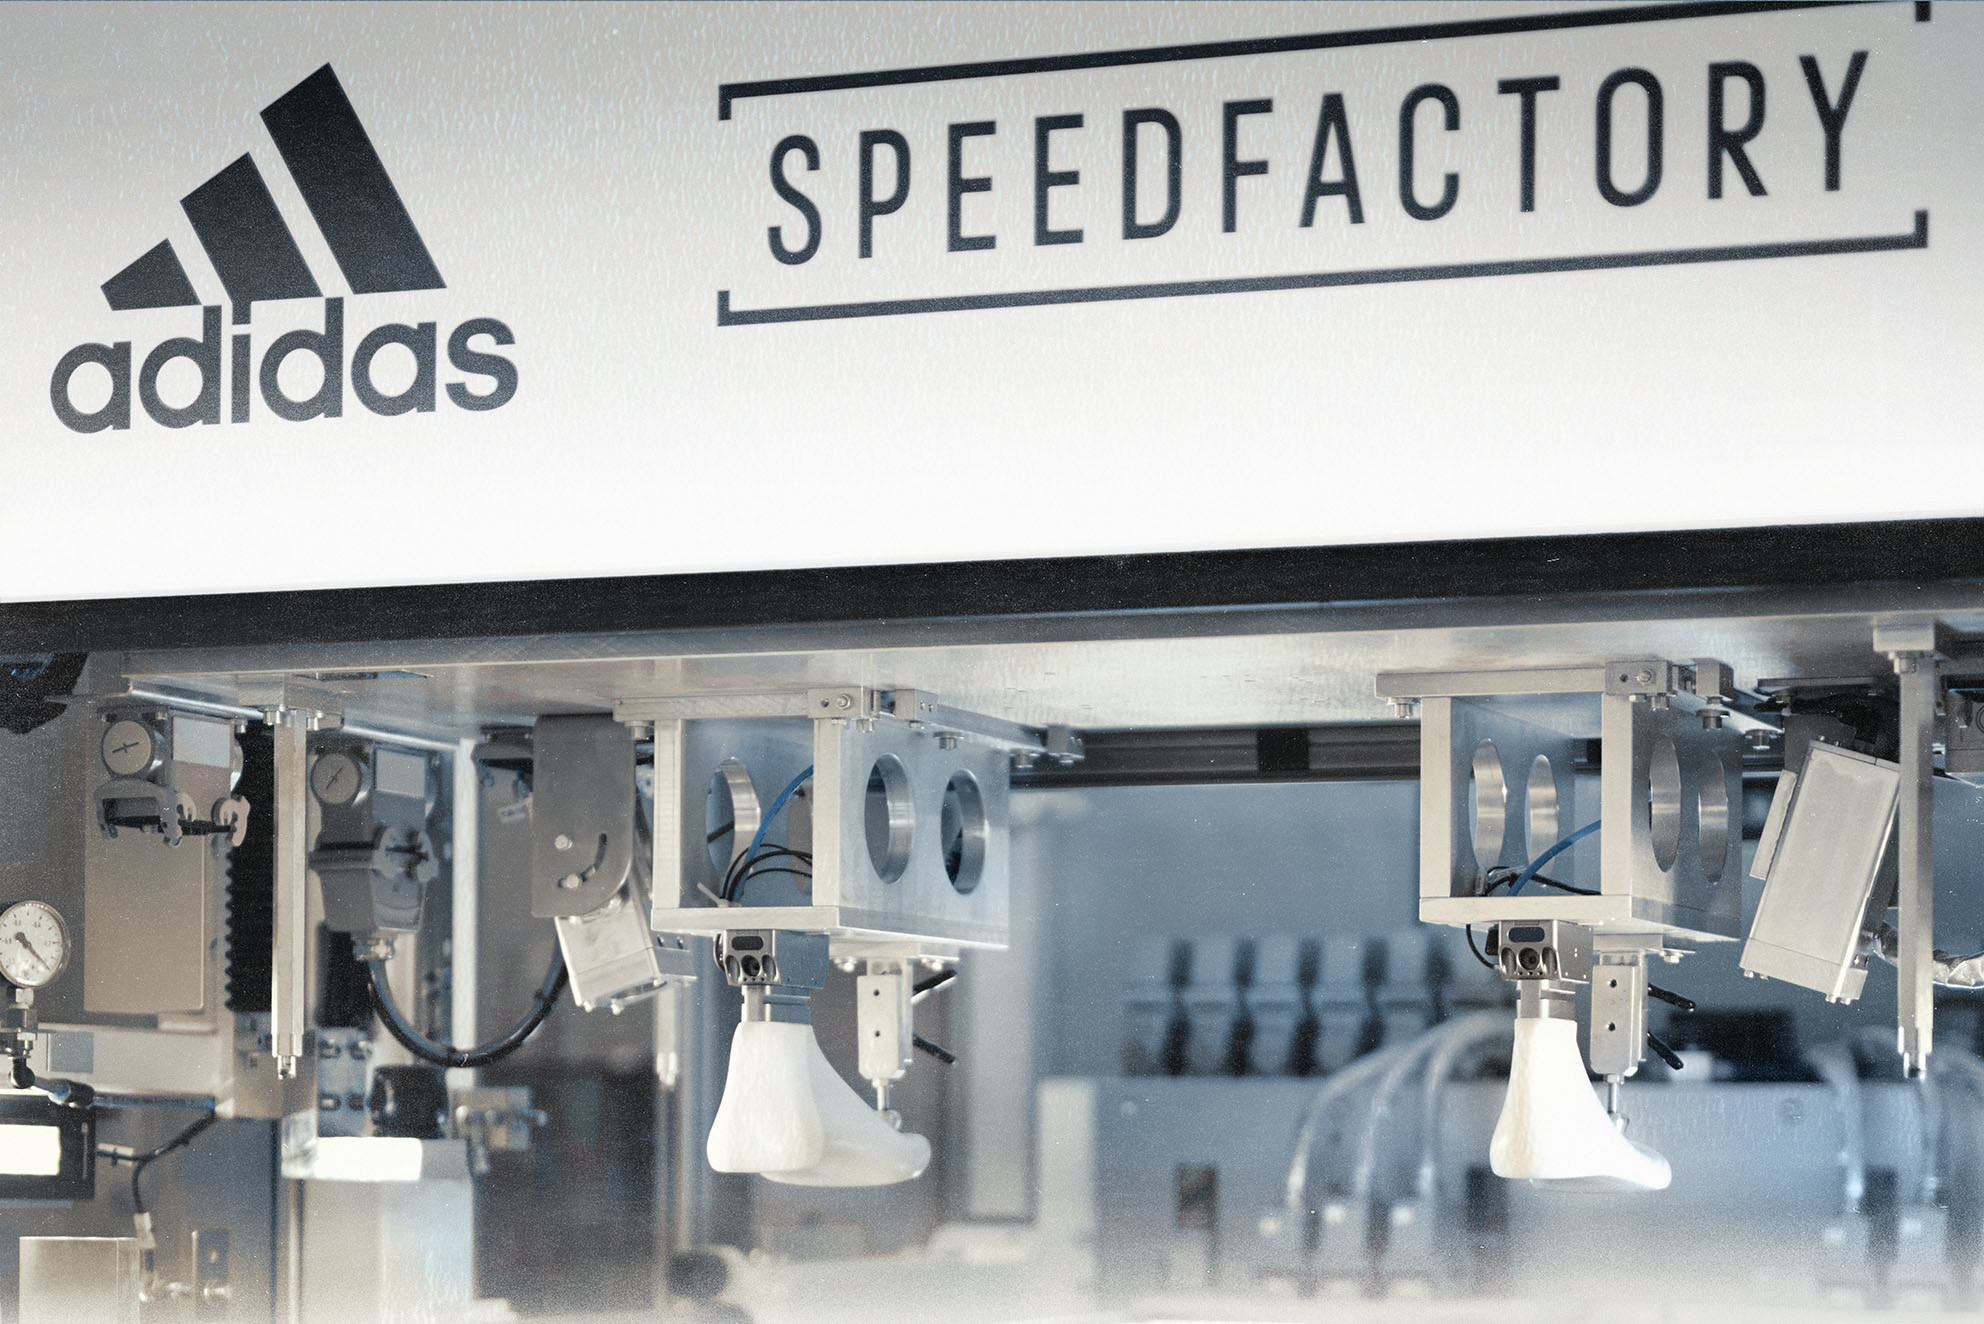 adidas SPEEDFACTORY and Foot Locker, Inc. launch strategic partnership.